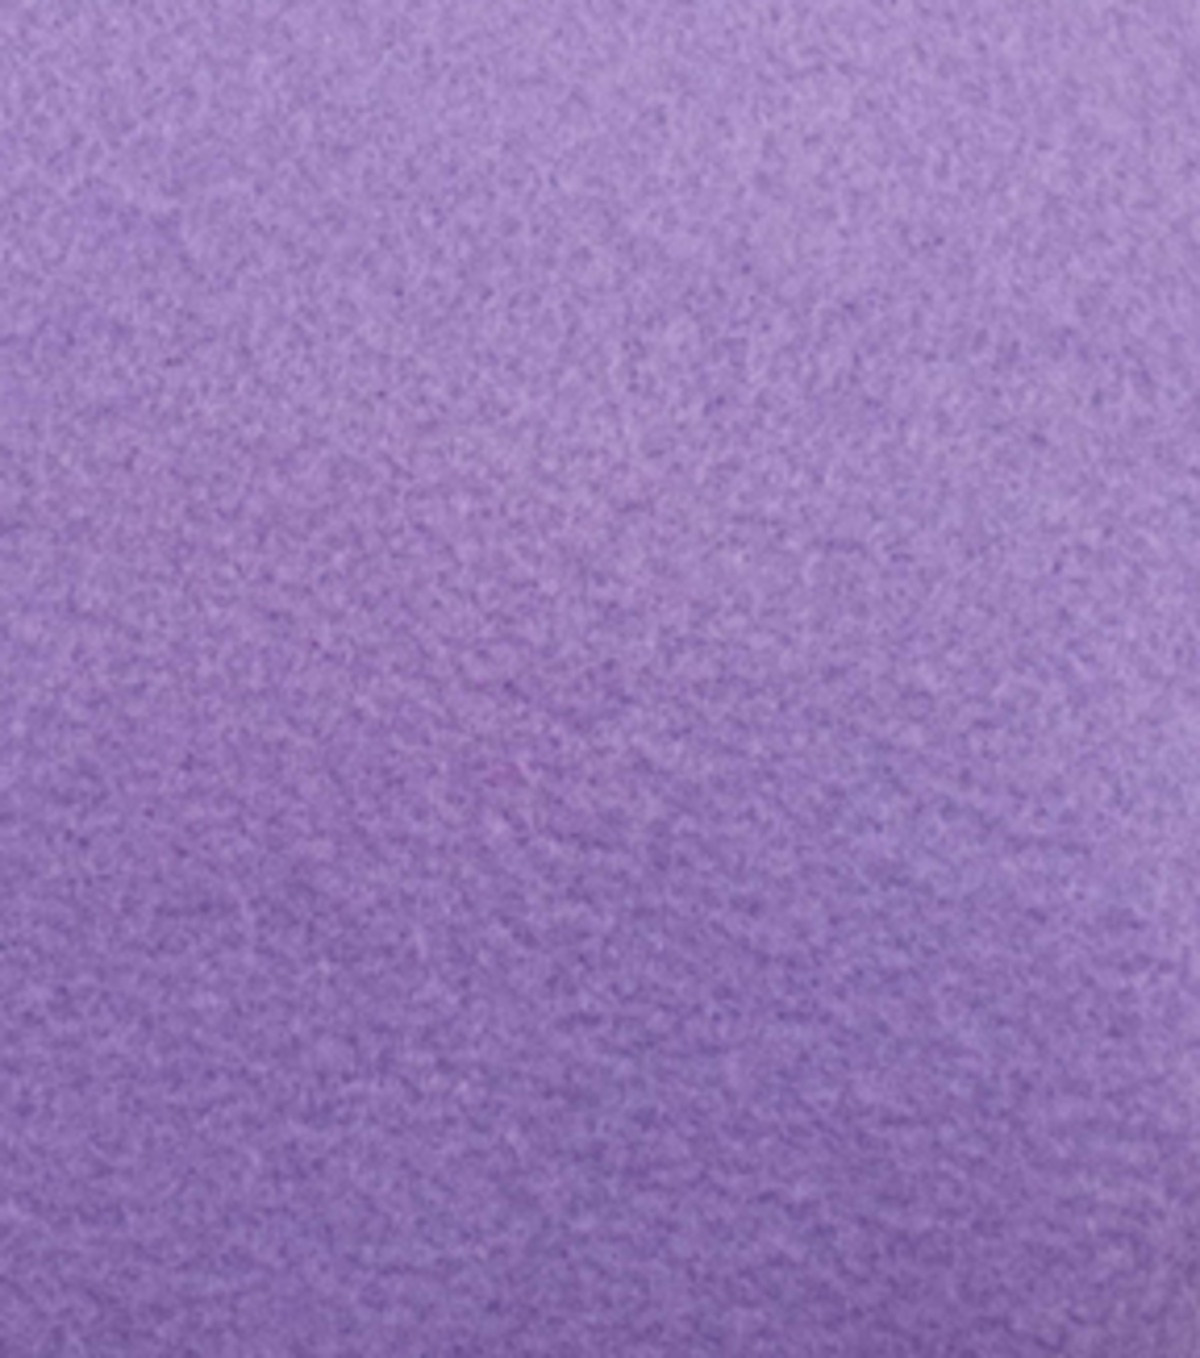 Blizzard Fleece Fabric -Solids, Purple